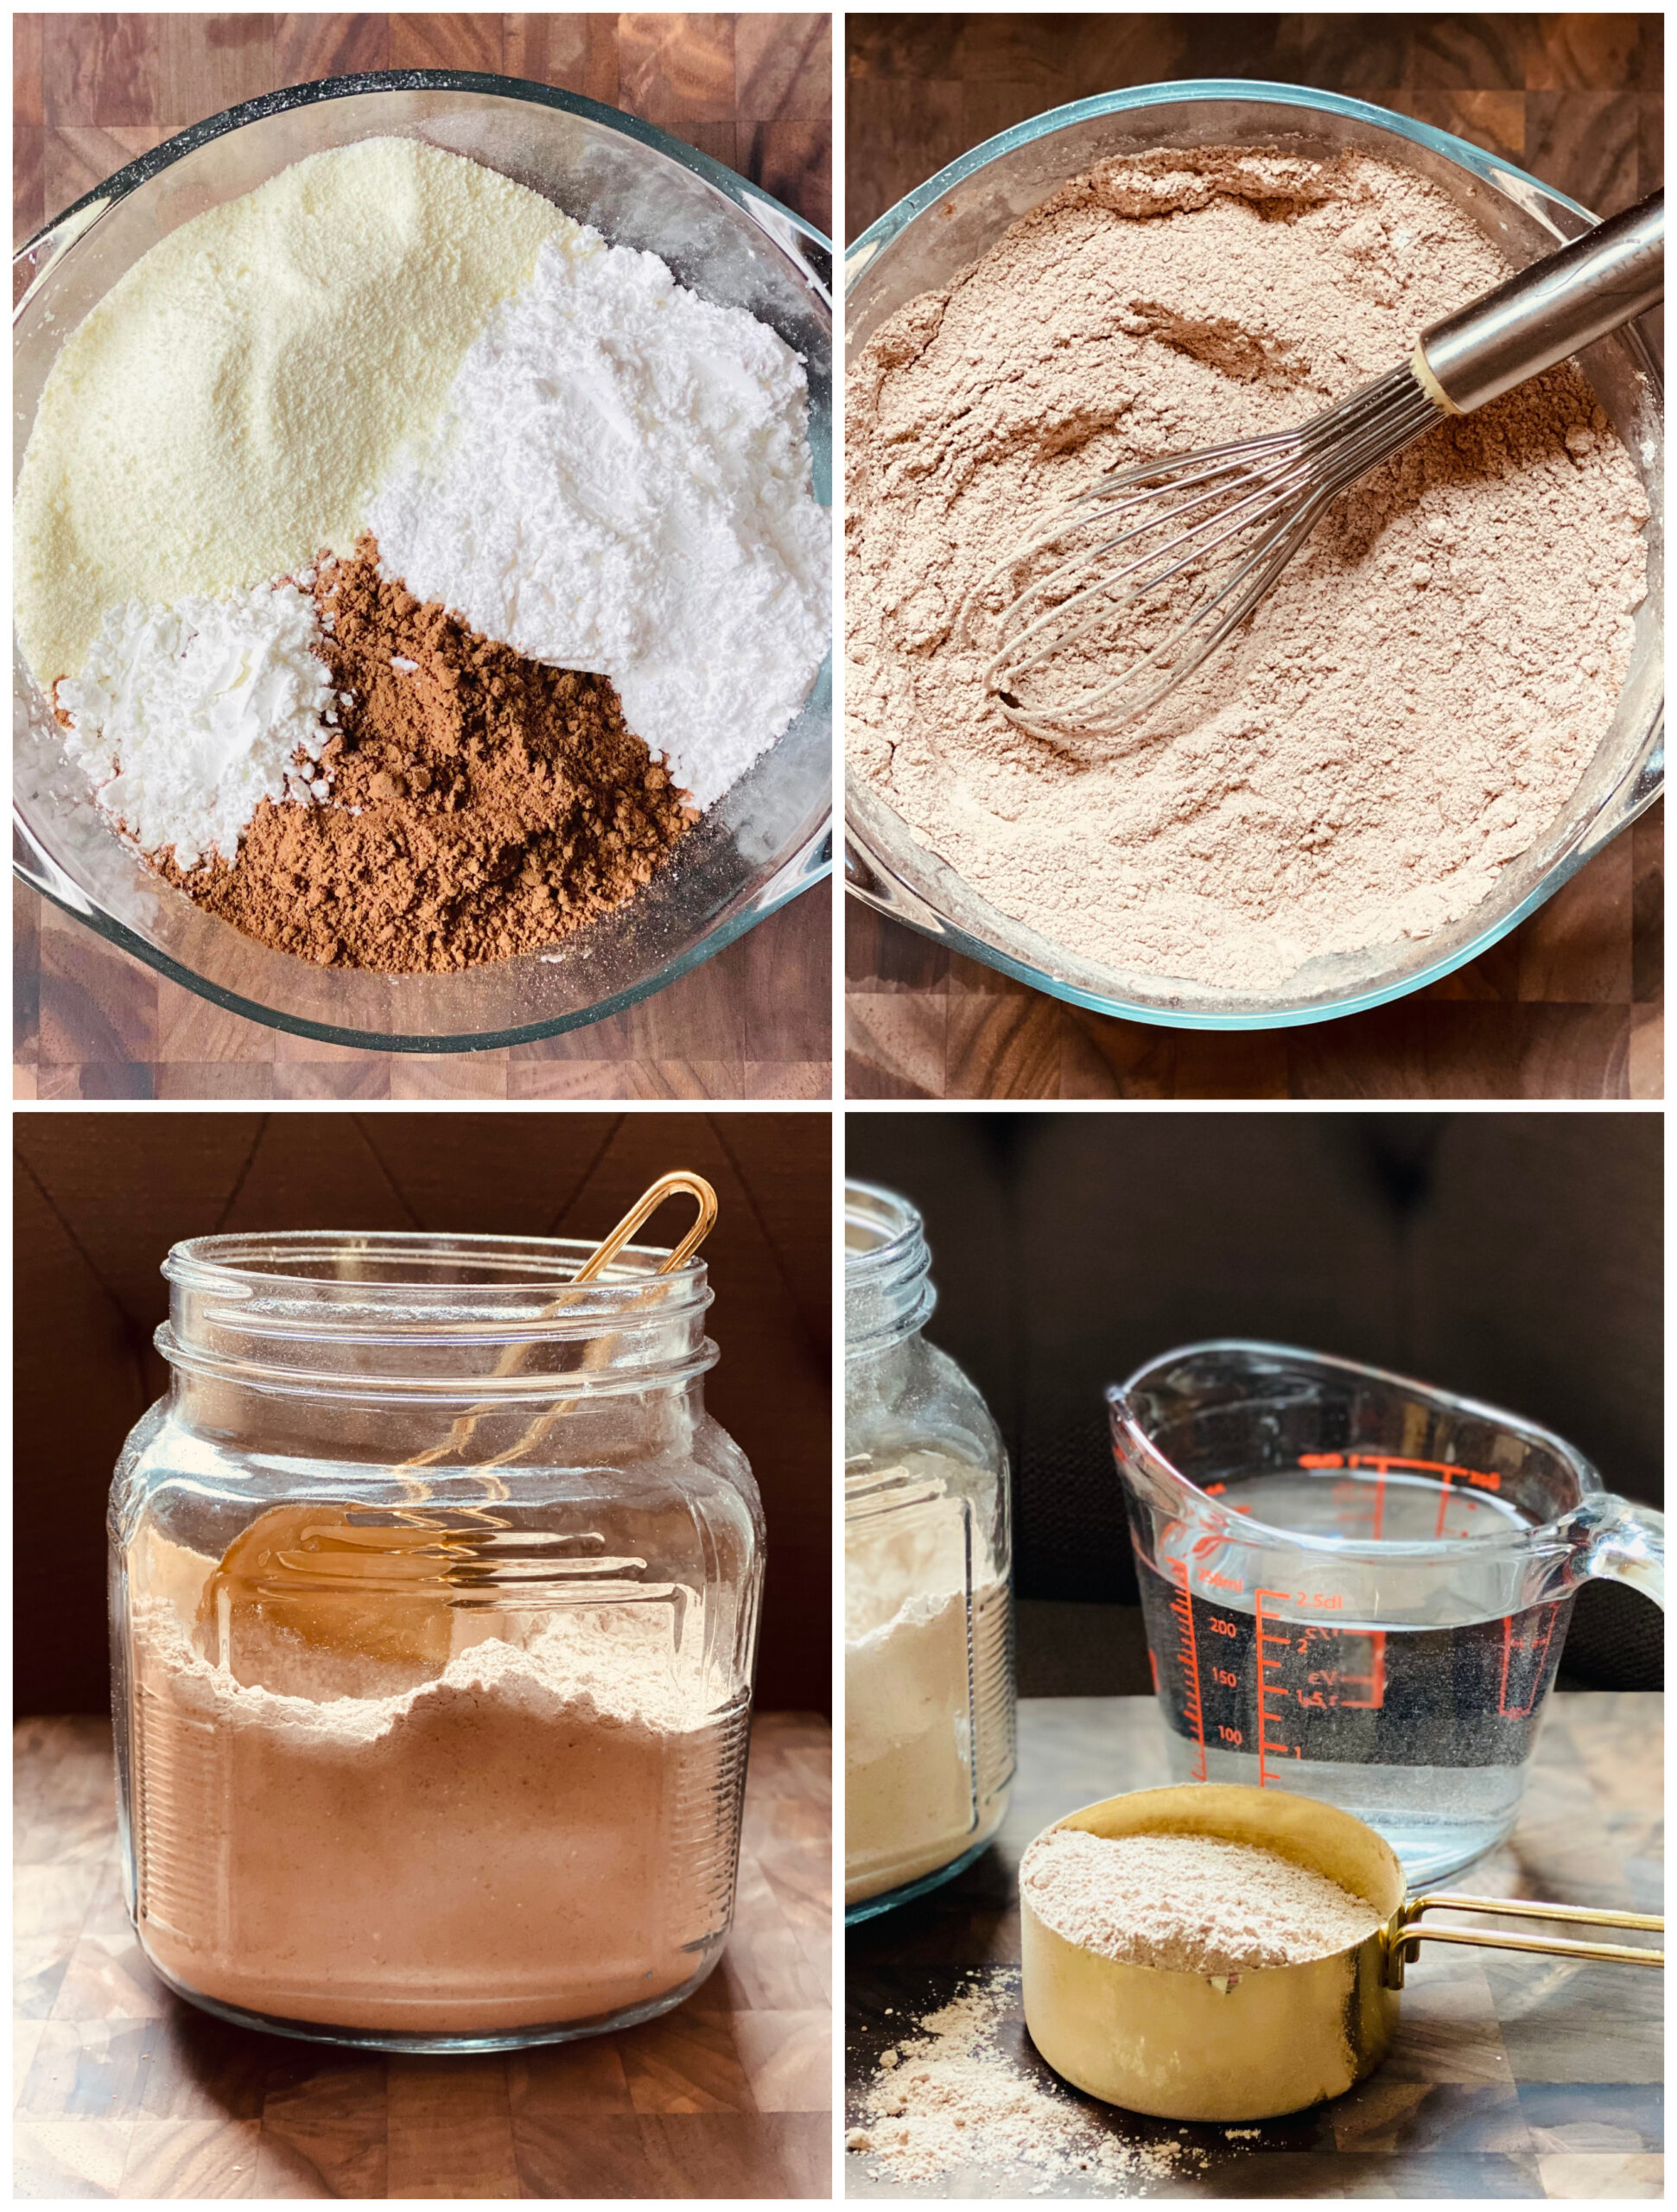 step by step photos on to make hot chocolate mix